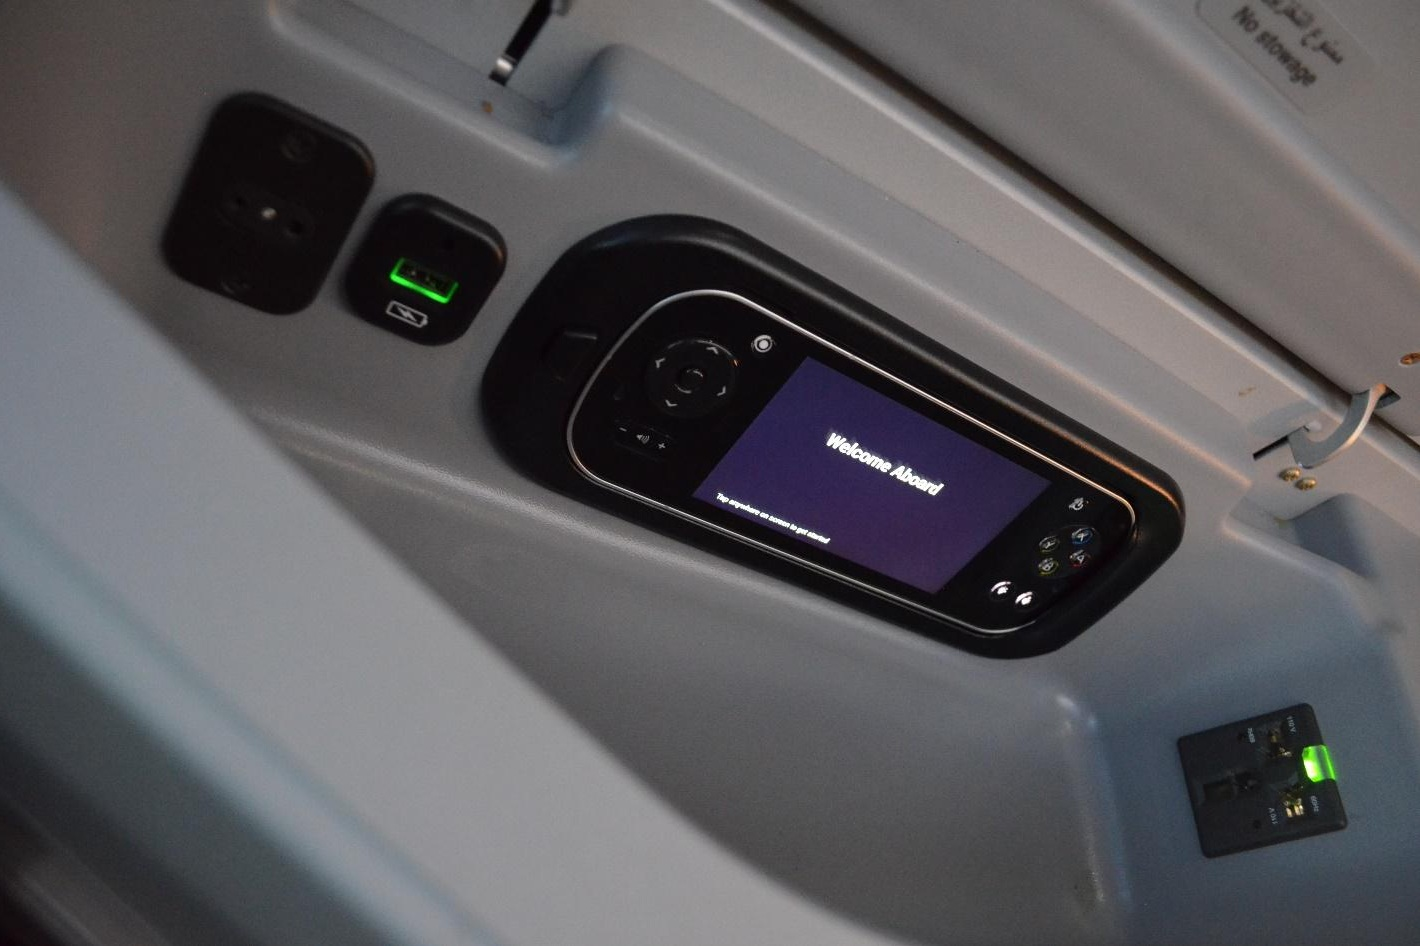 EgyptAir 787 business class – Storage unit and entertainment controller